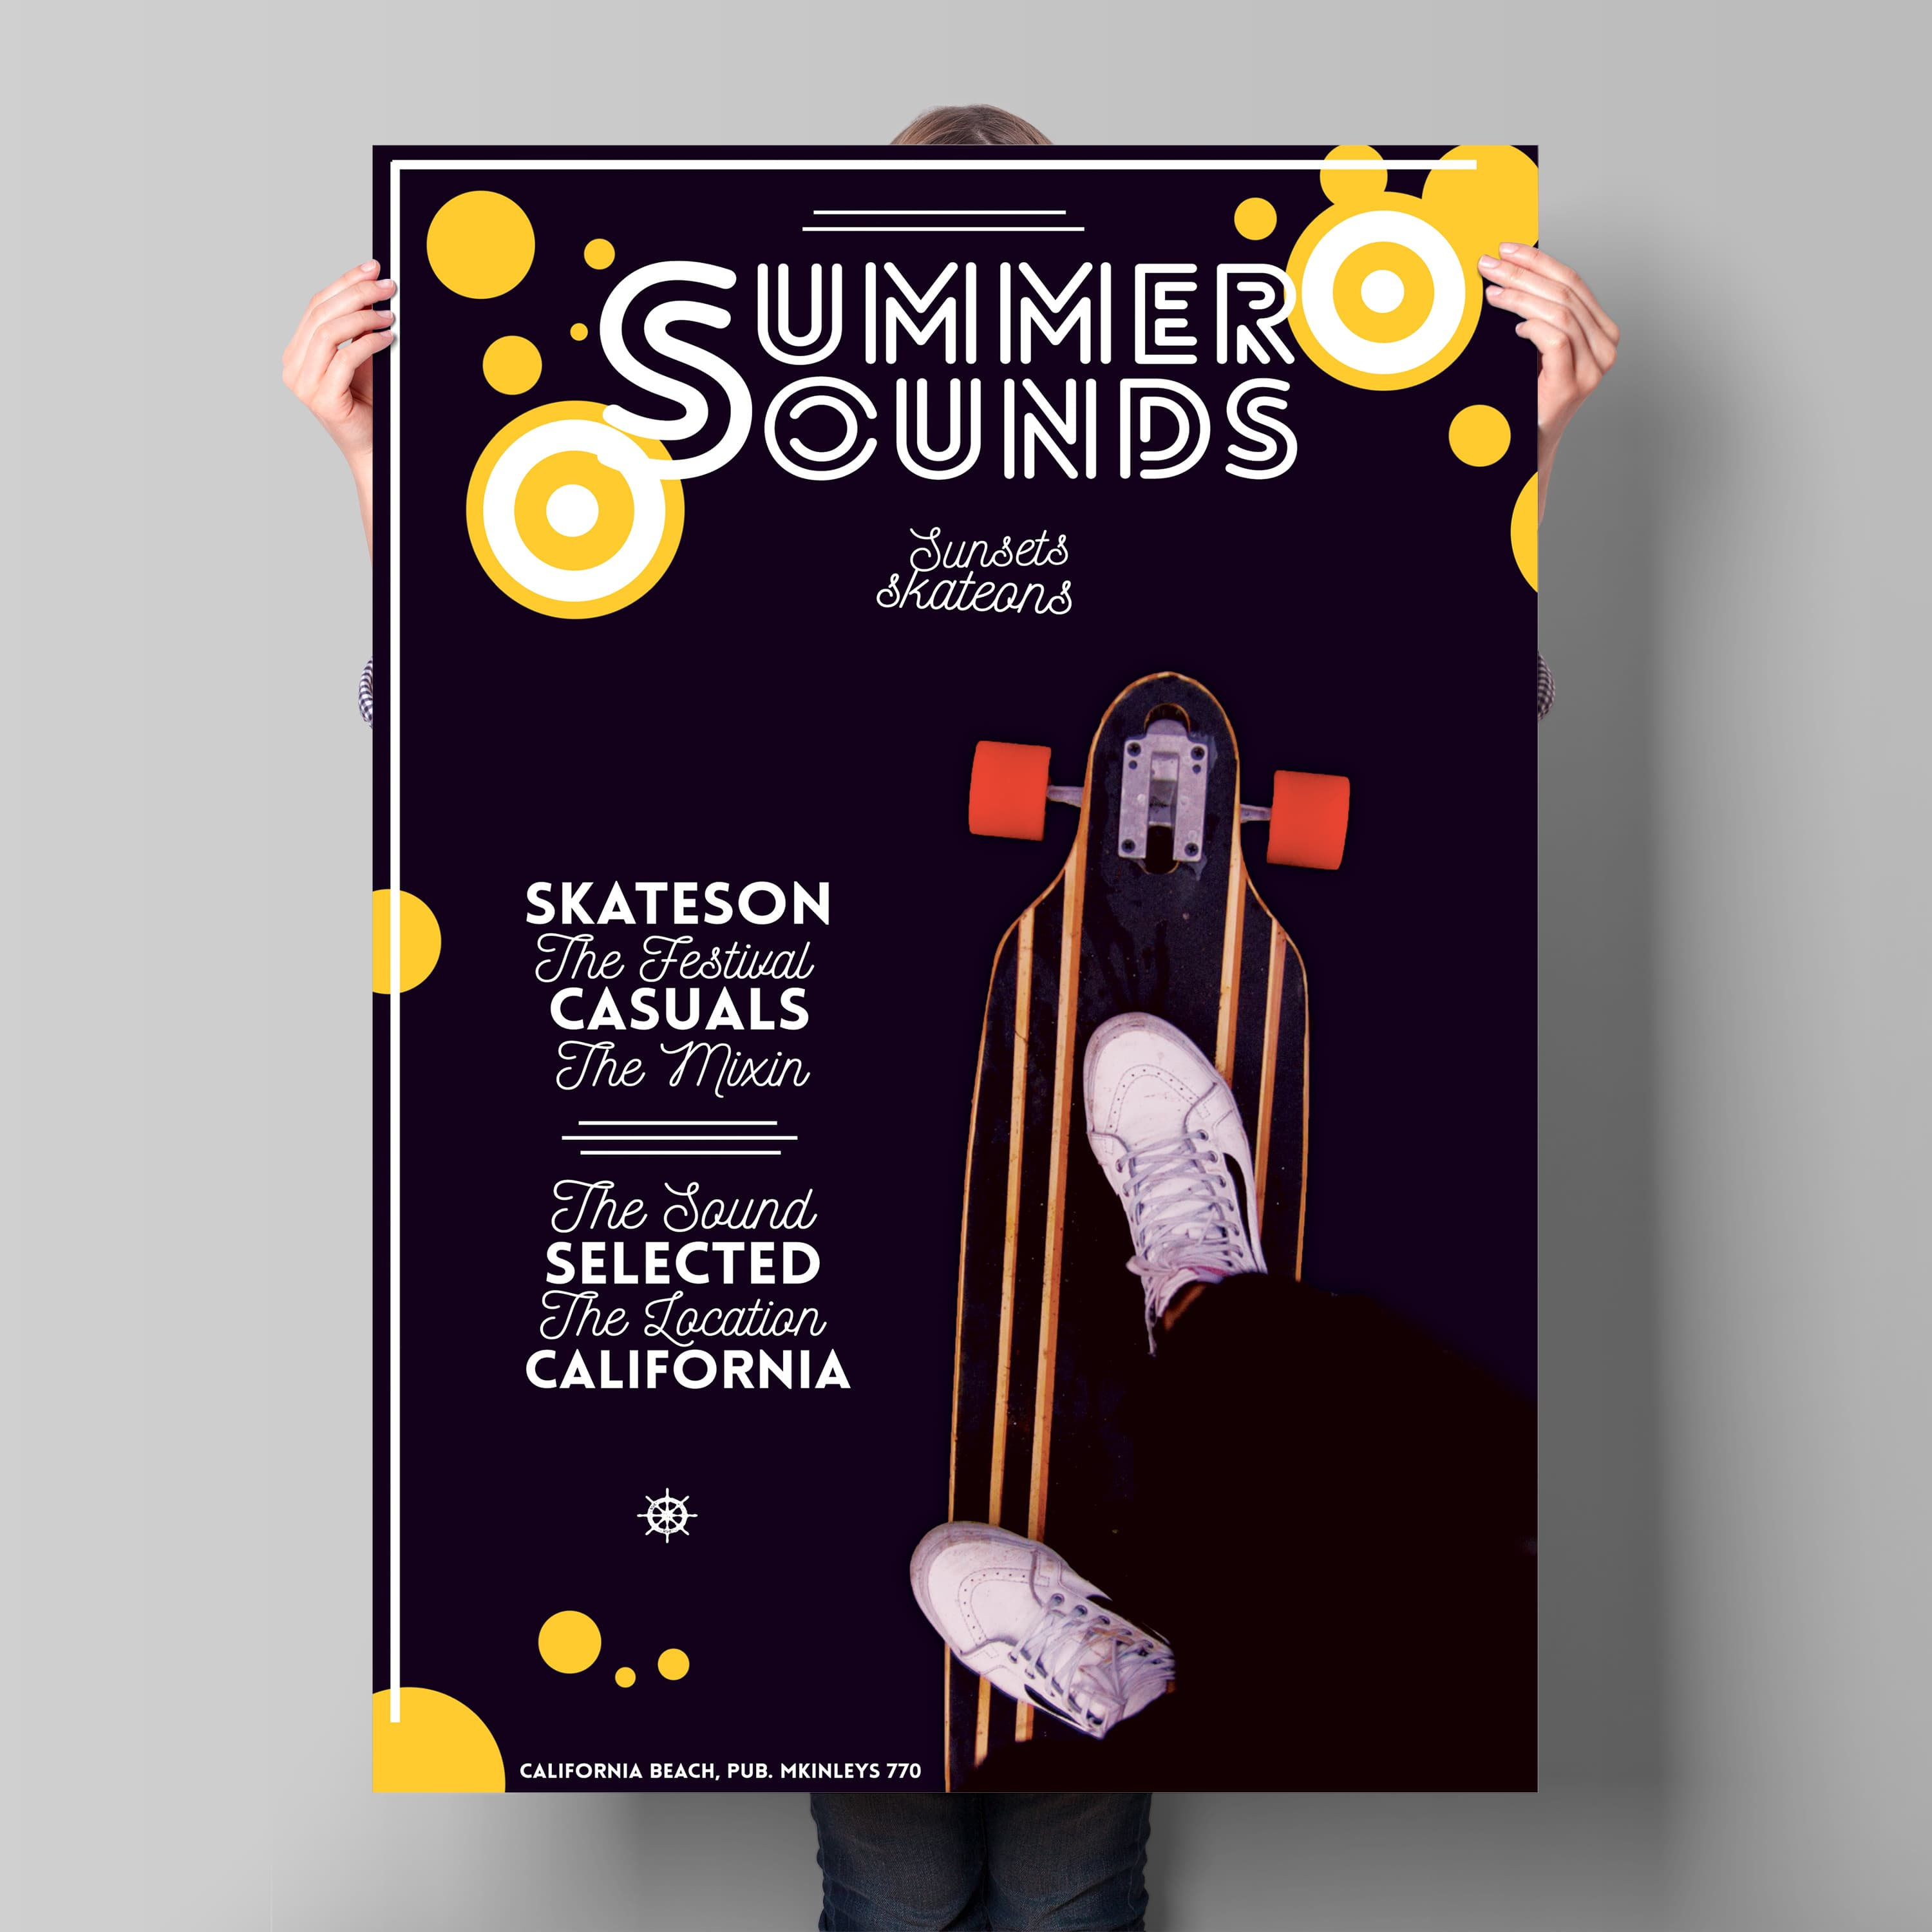 summerboard-sounds-poster-min